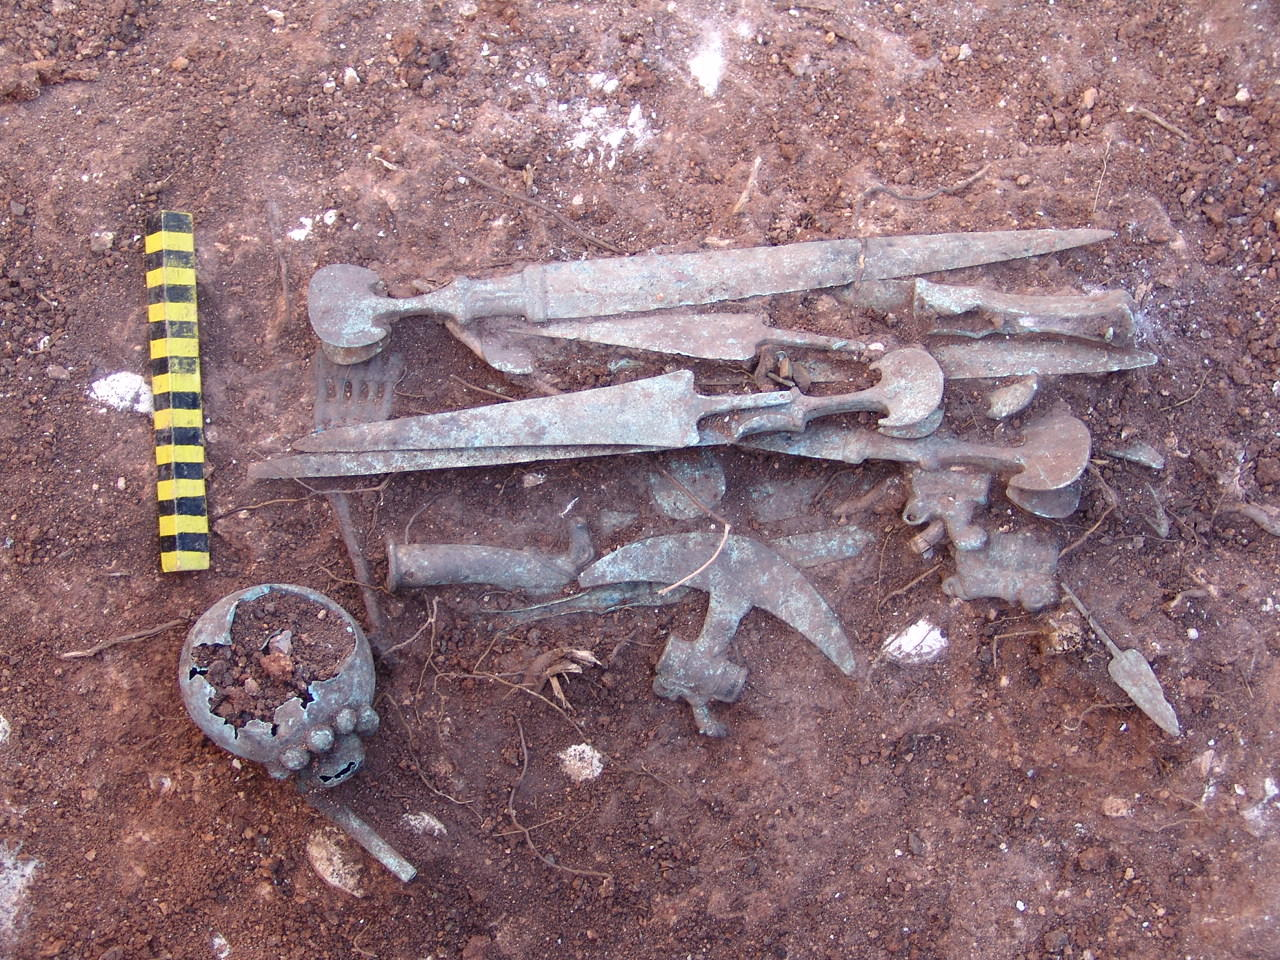 Sangtarashan, 2004, package of objects including weapons and vessels